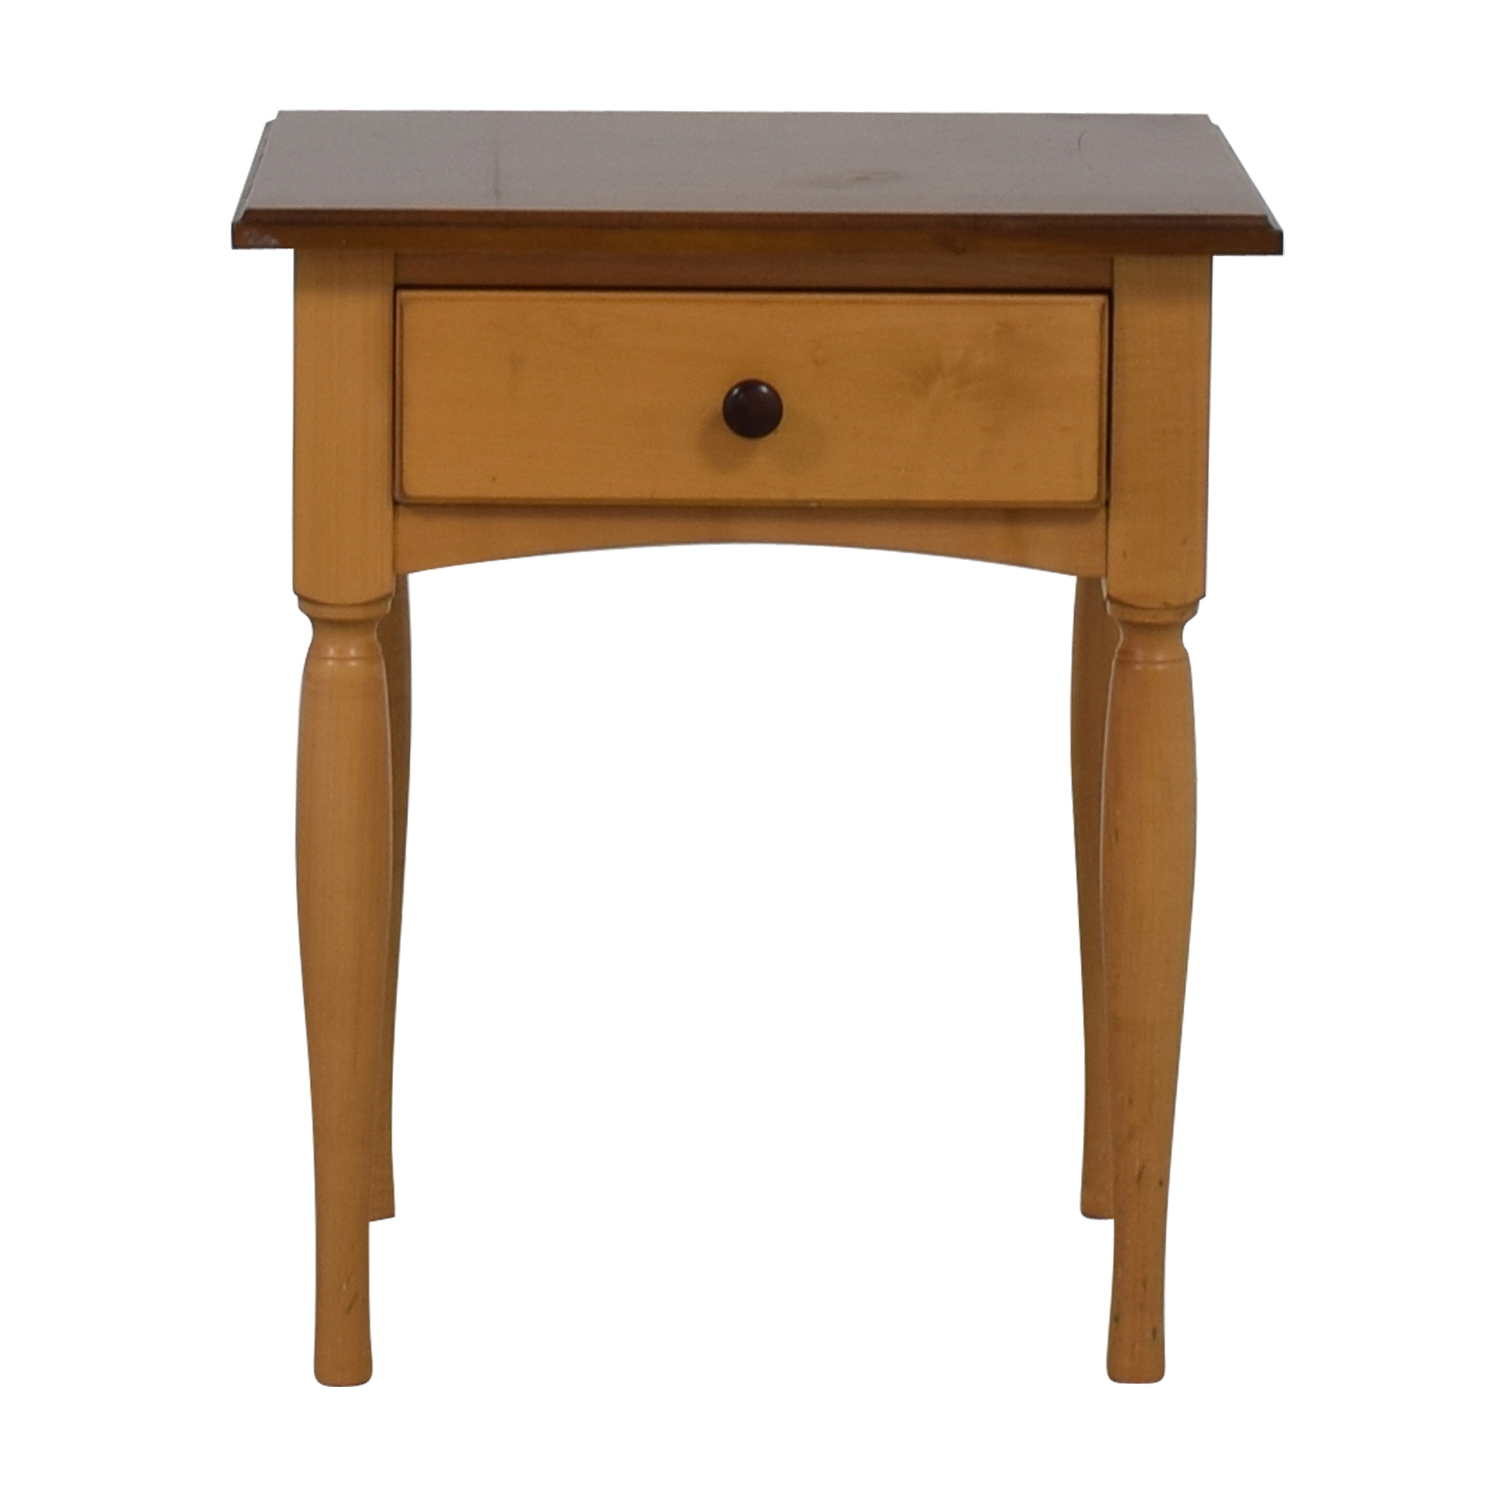 Grange Grange Shaker Single Drawer End Table price